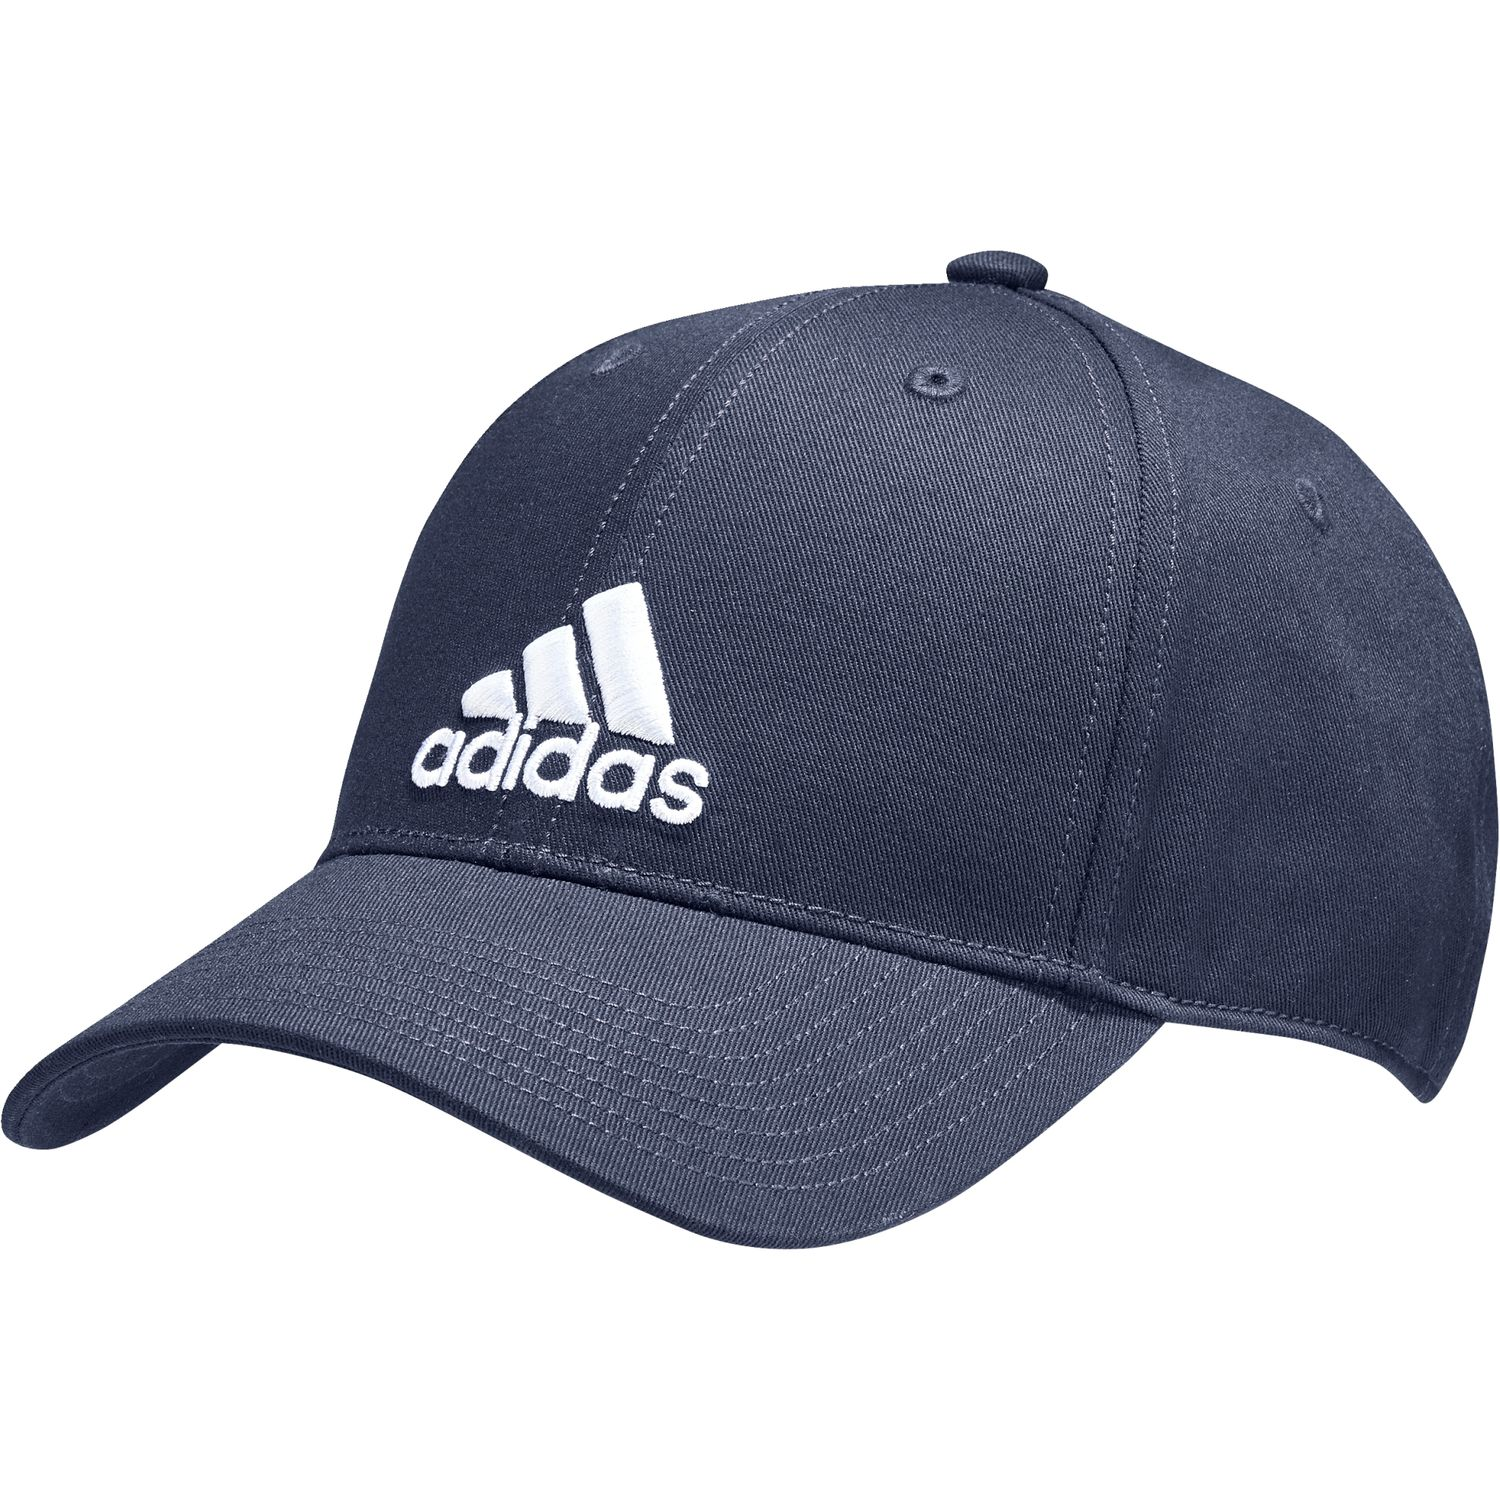 8173ca0f56d adidas performance 6 PANEL CLASSIC CAP   baseball cap women children men s  CF6913